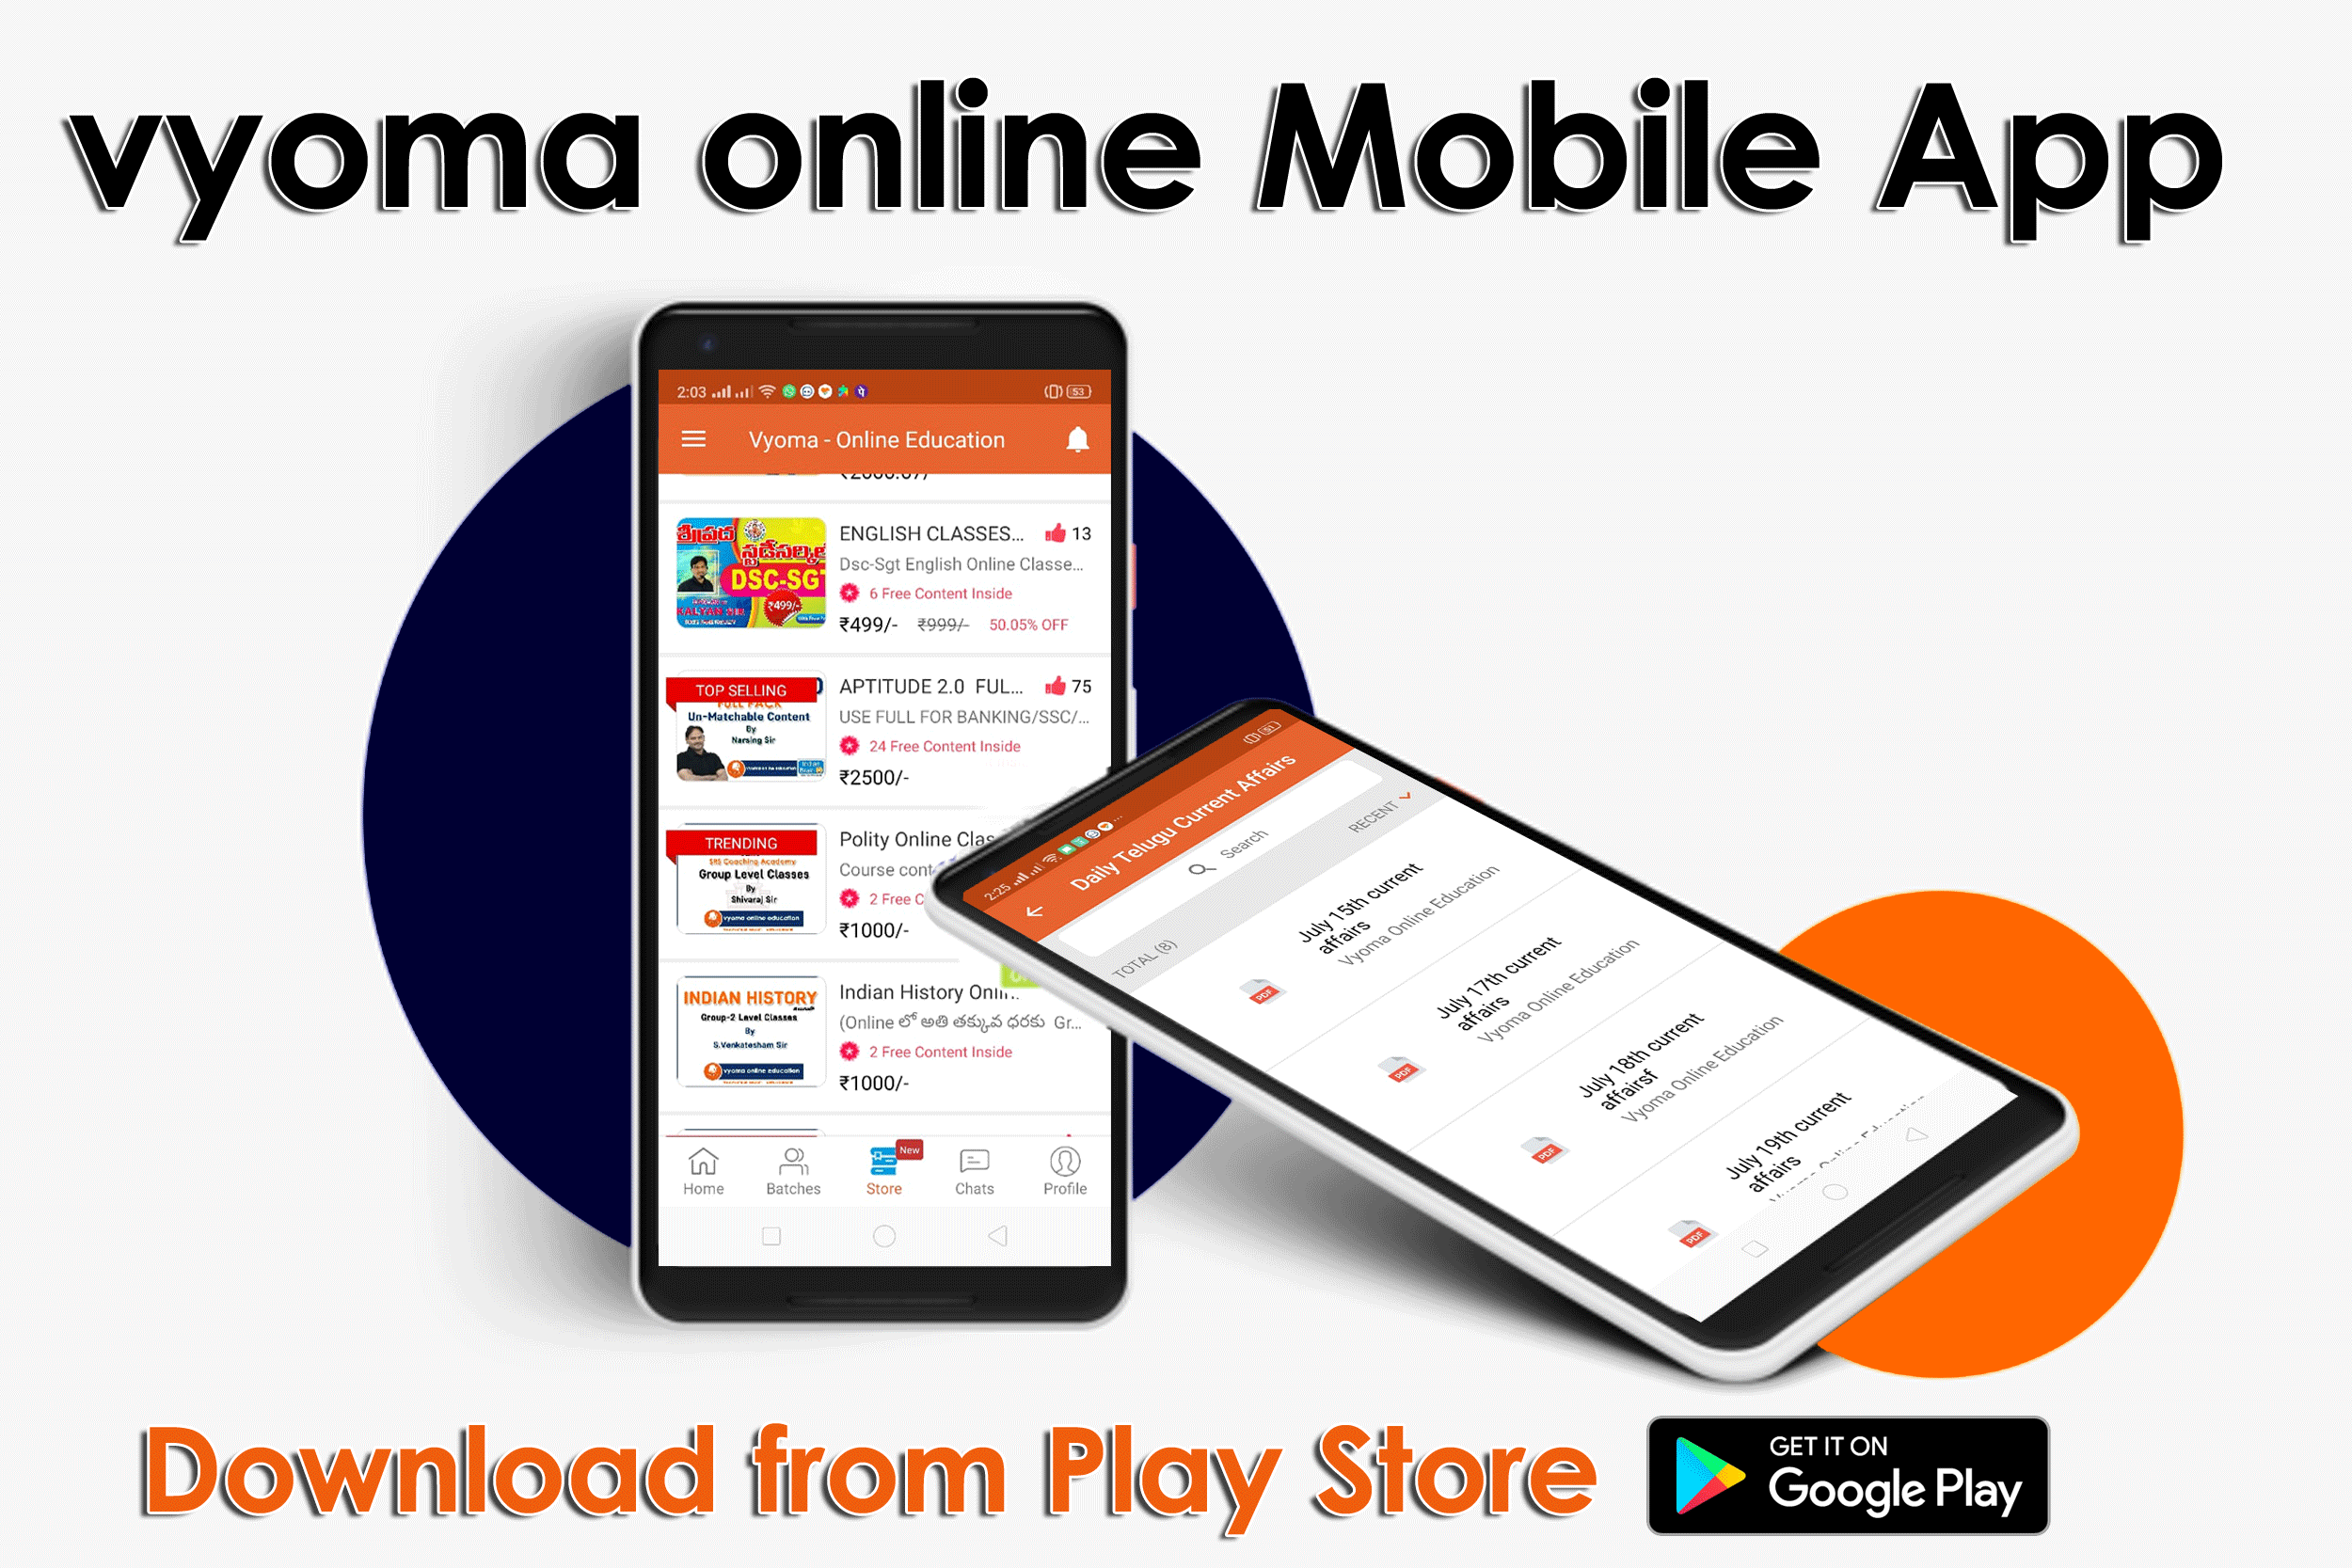 Vyoma mobile app